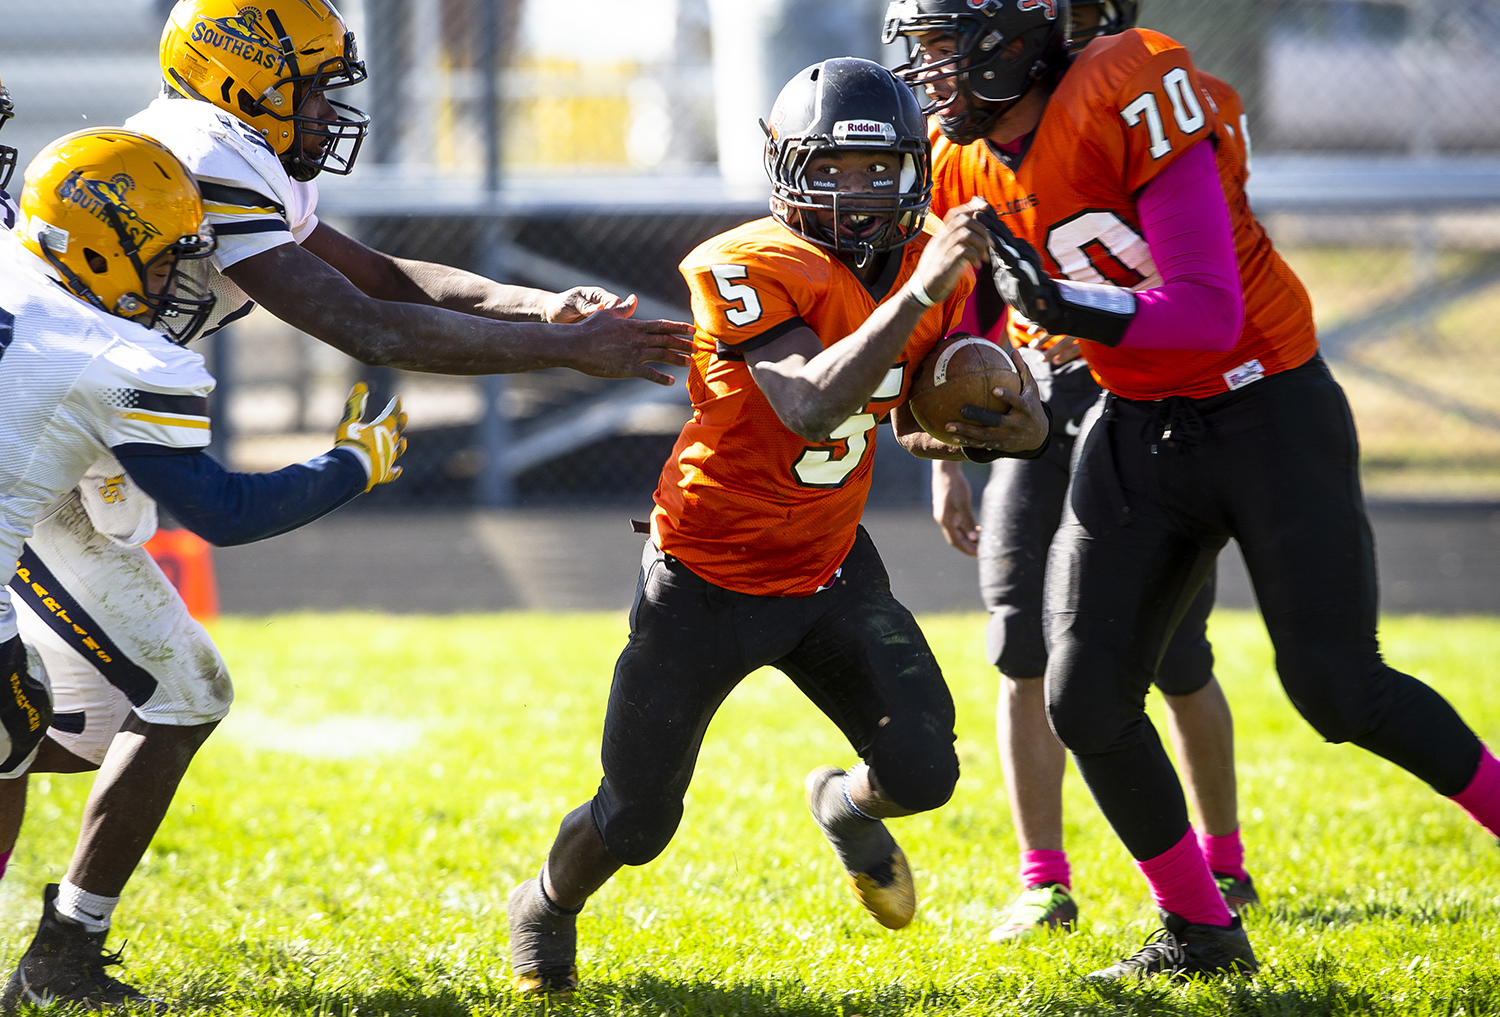 Lanphier's Narkel Leflore breaks for the open field at Memorial Stadium Saturday, Oct. 20, 2018 in Springfield, Ill. [Rich Saal/The State Journal-Register]